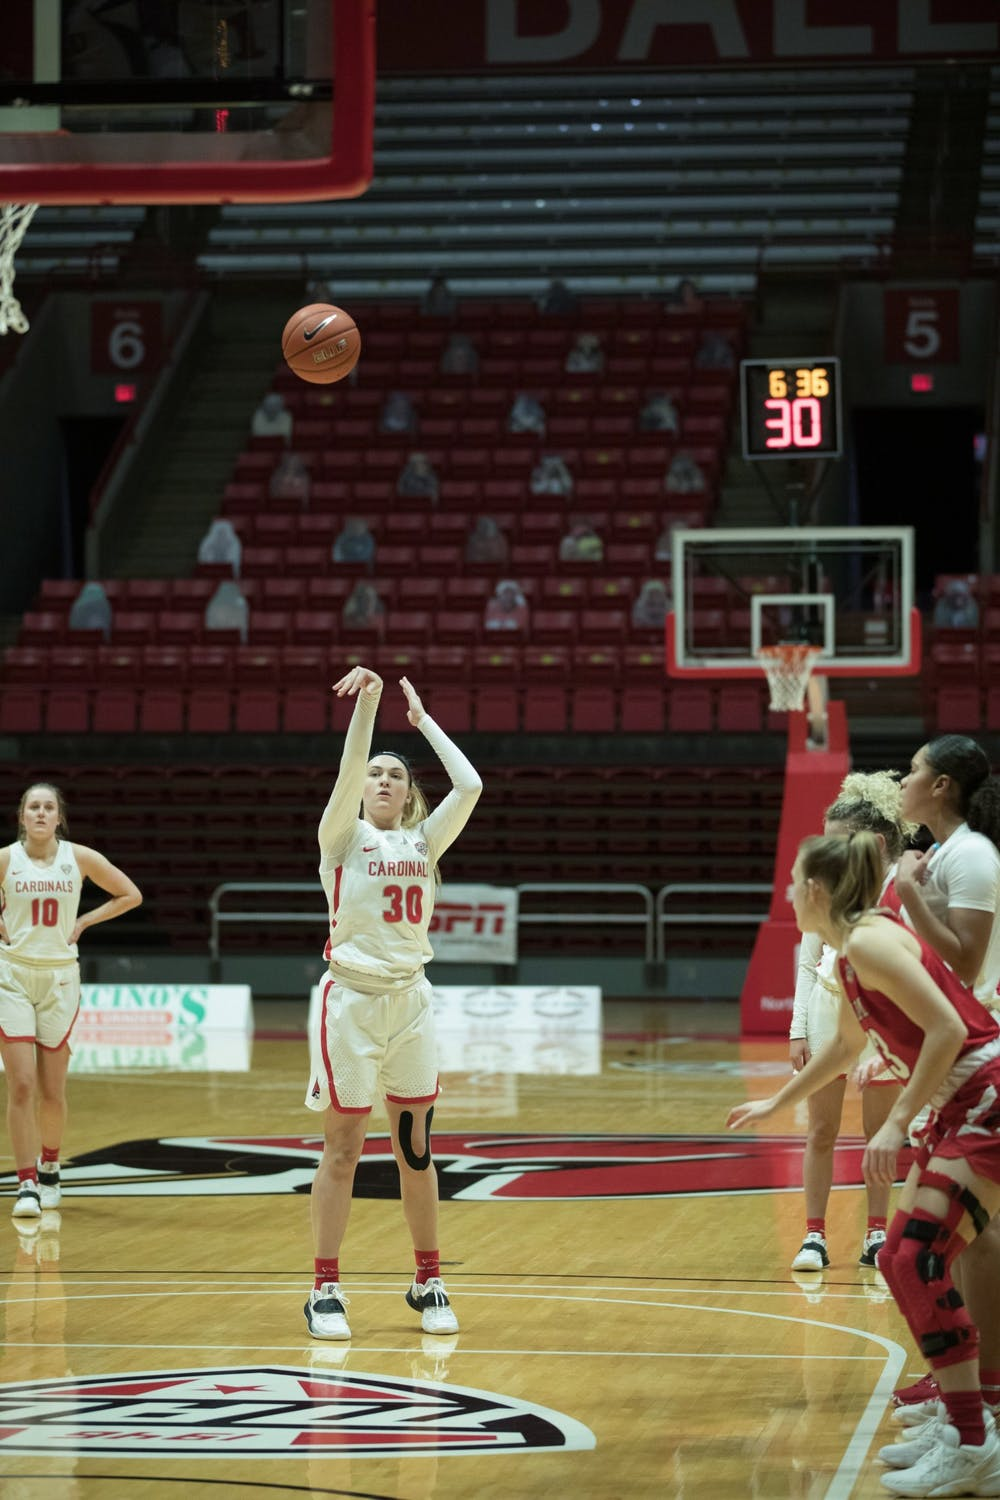 Four Takeaways from Ball State's home loss to Ohio